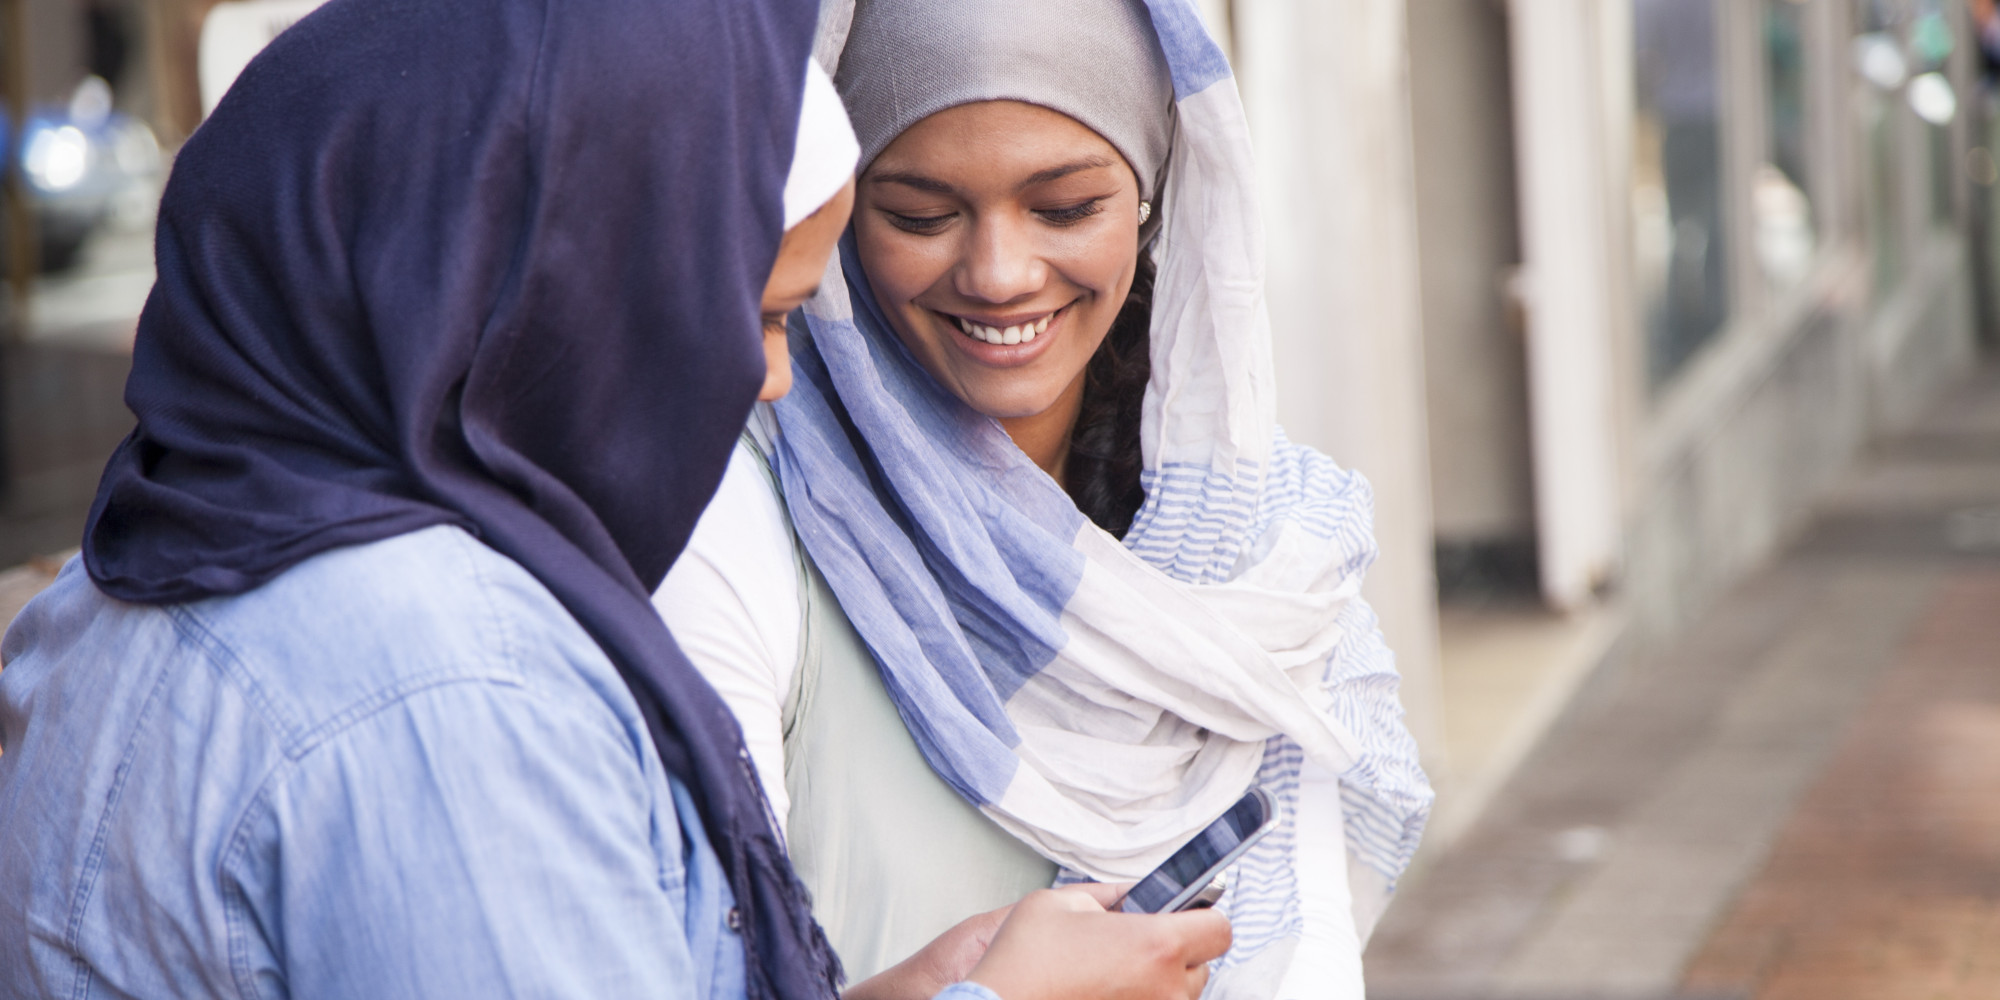 bejou muslim girl personals 7 reasons to date a muslim girl hesse kassel april 12, 2015  girls 332 comments  more generally there is a perception that dating a muslim girl is a one way trip to a starring role in.